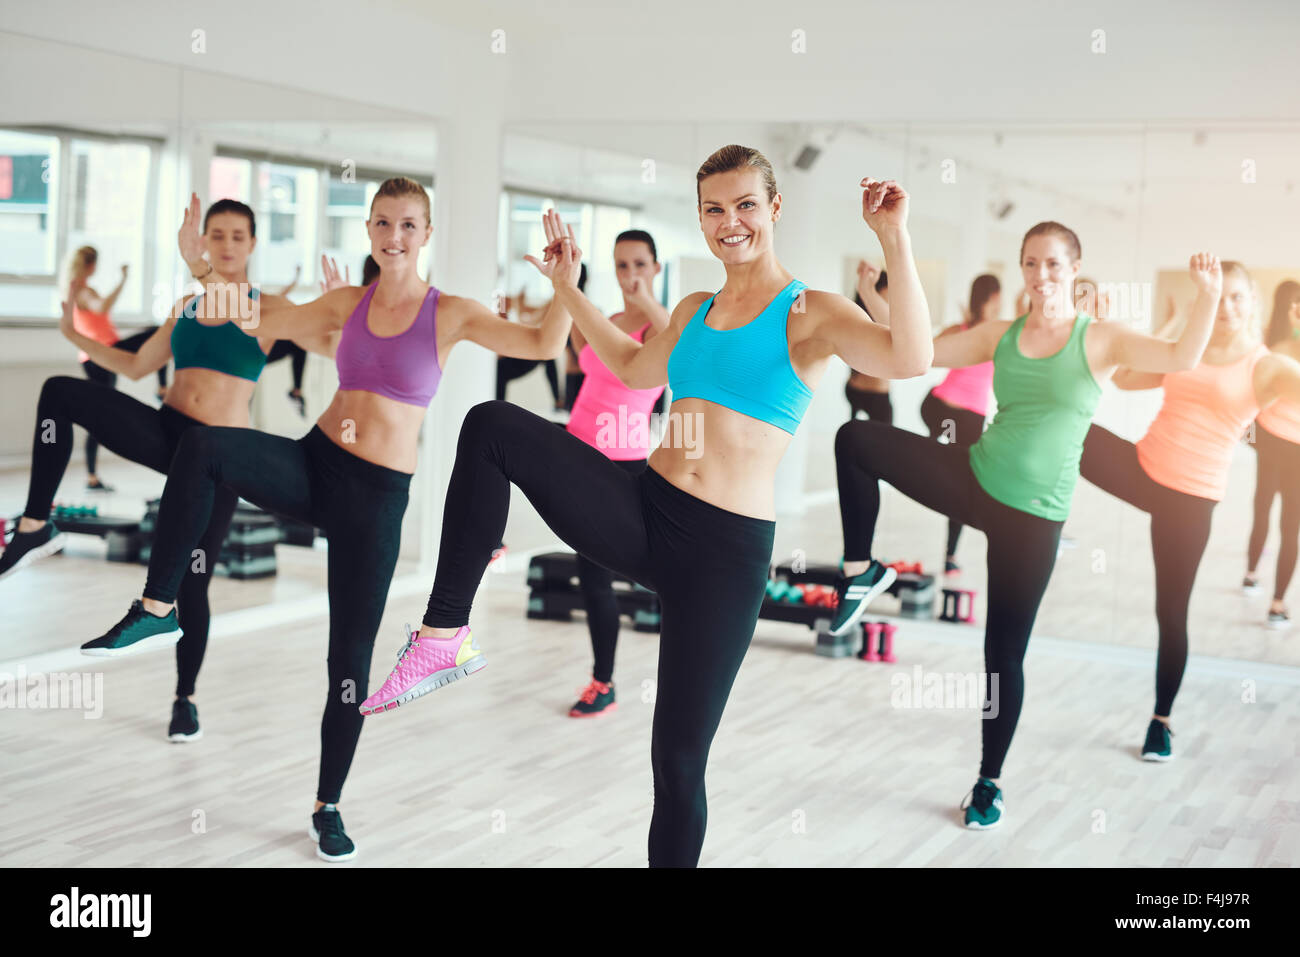 Large group of attractive toned fit young women enjoying an aerobics workout at the gym in a health and fitness - Stock Image